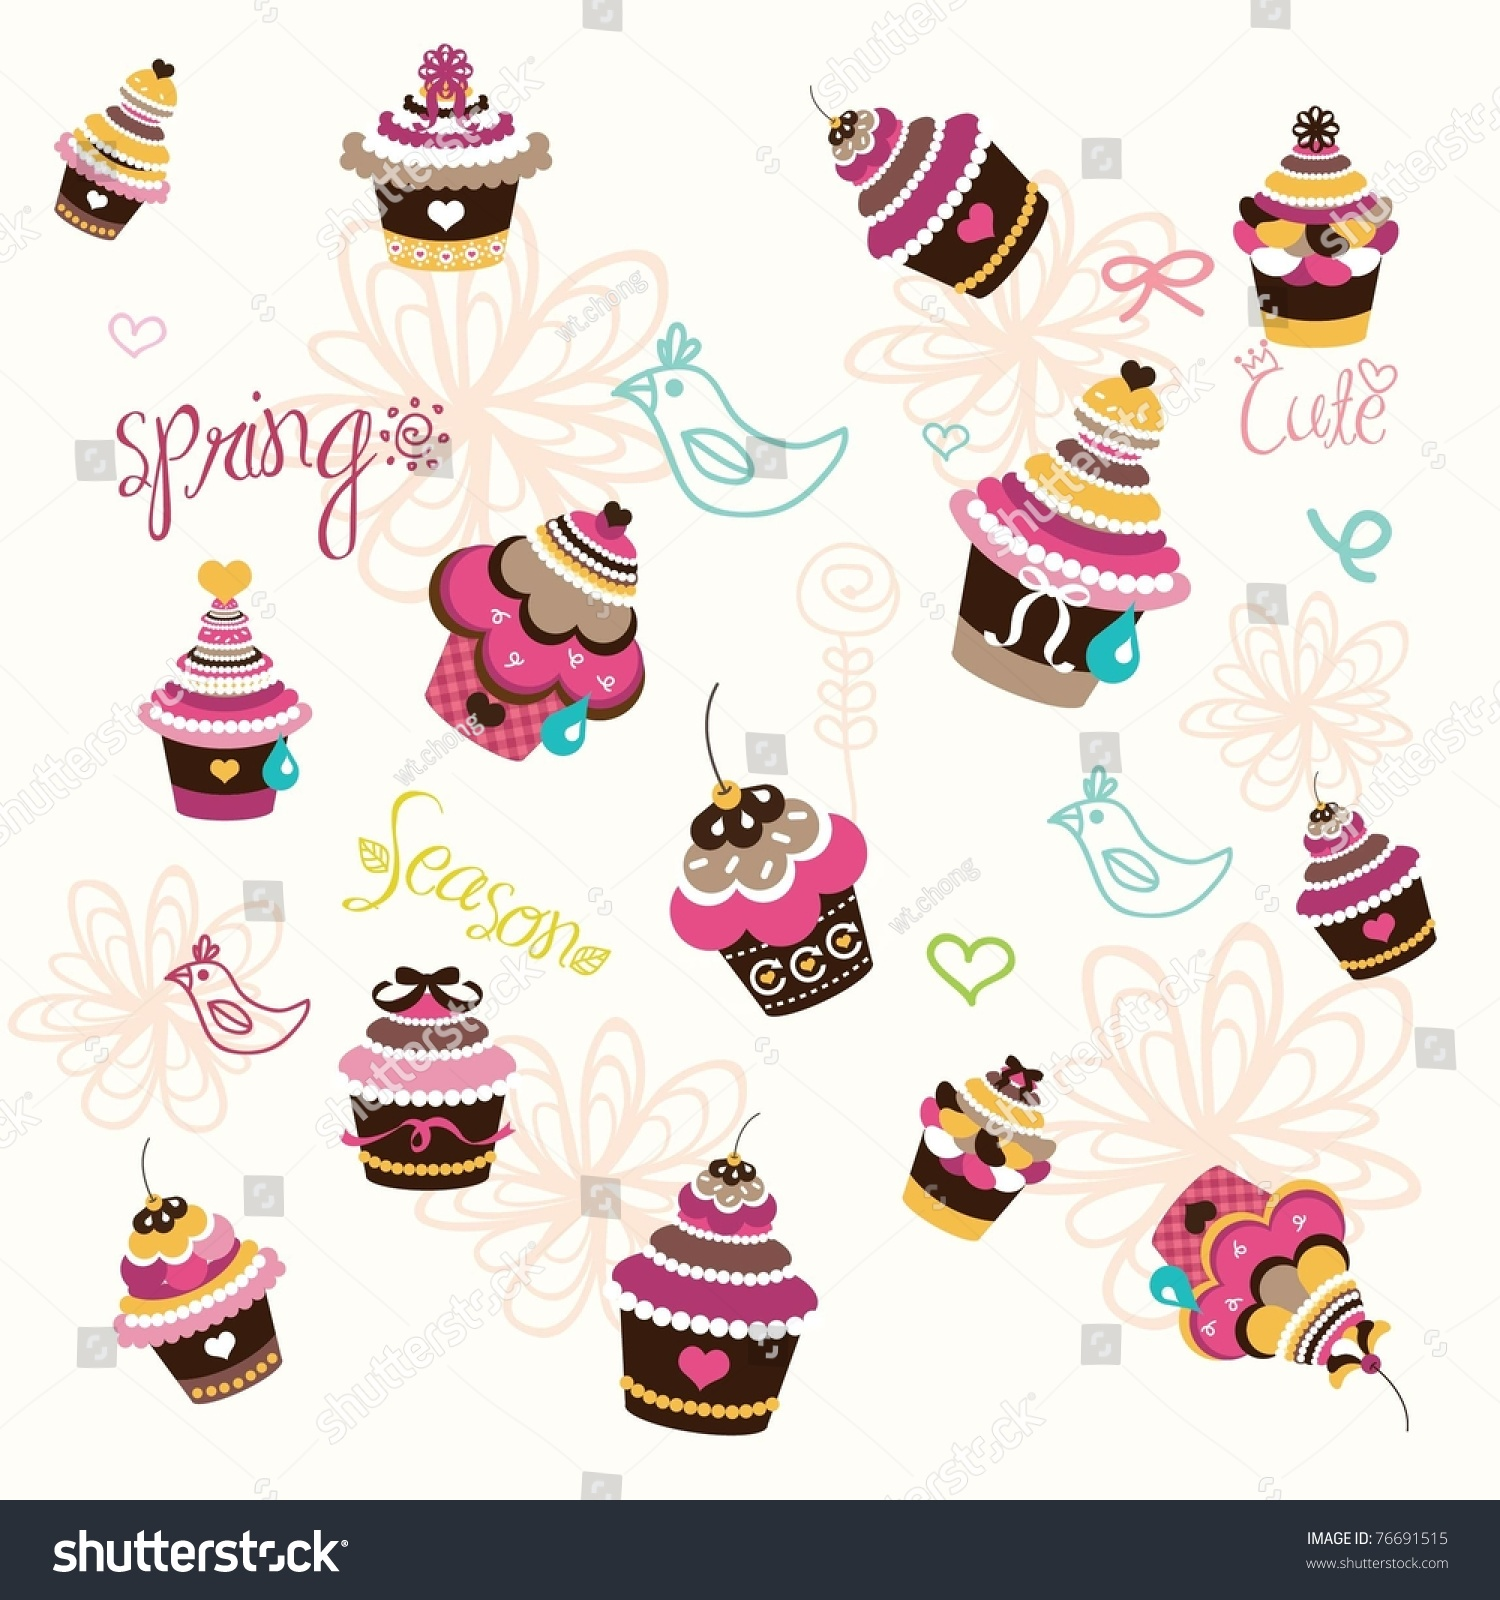 Cupcake Wall Paper Design Stock Vector Illustration ...